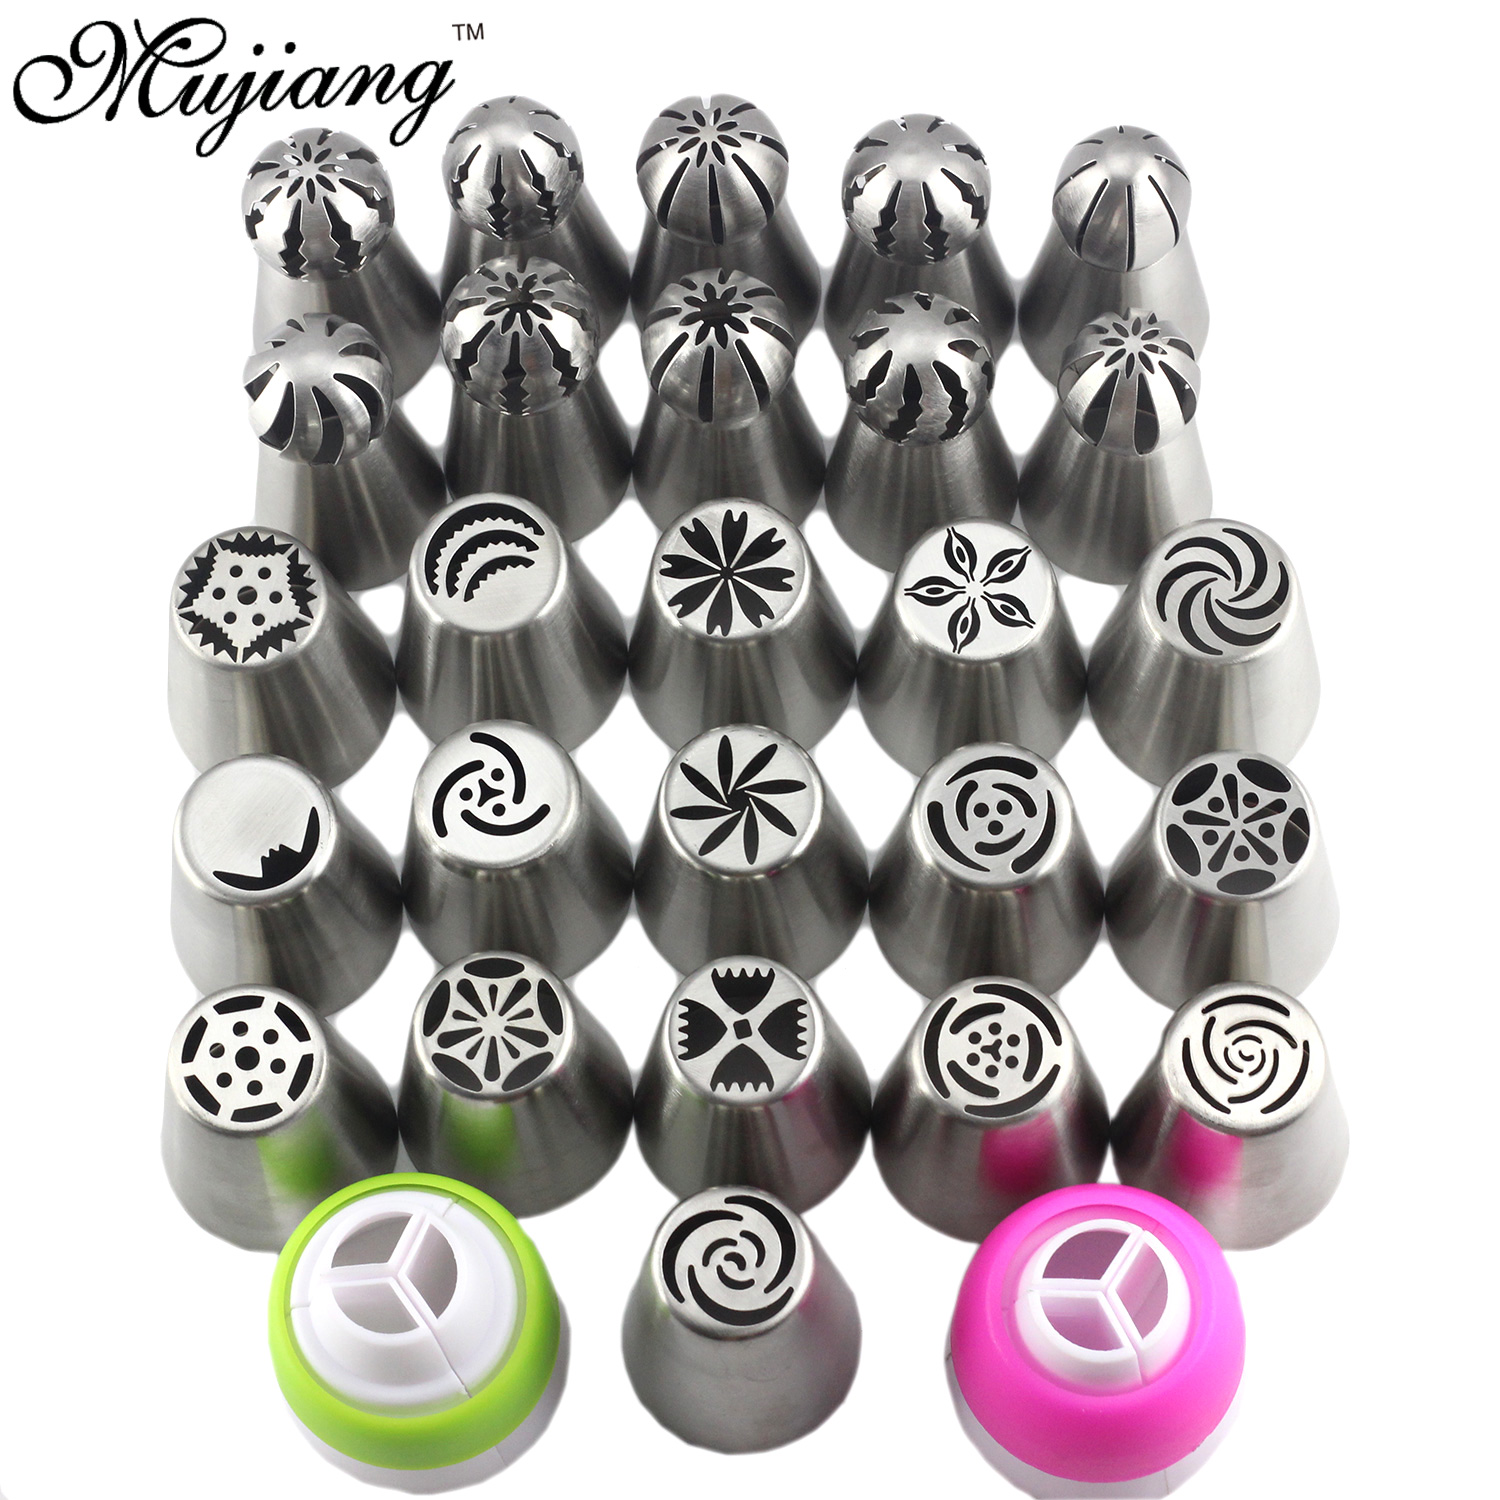 Mujiang 28 Pcs Stainless Steel Sphere Ball Russian Nozzles Icing Cream Piping Pastry Tips Cake Decorating Confectionery Tools